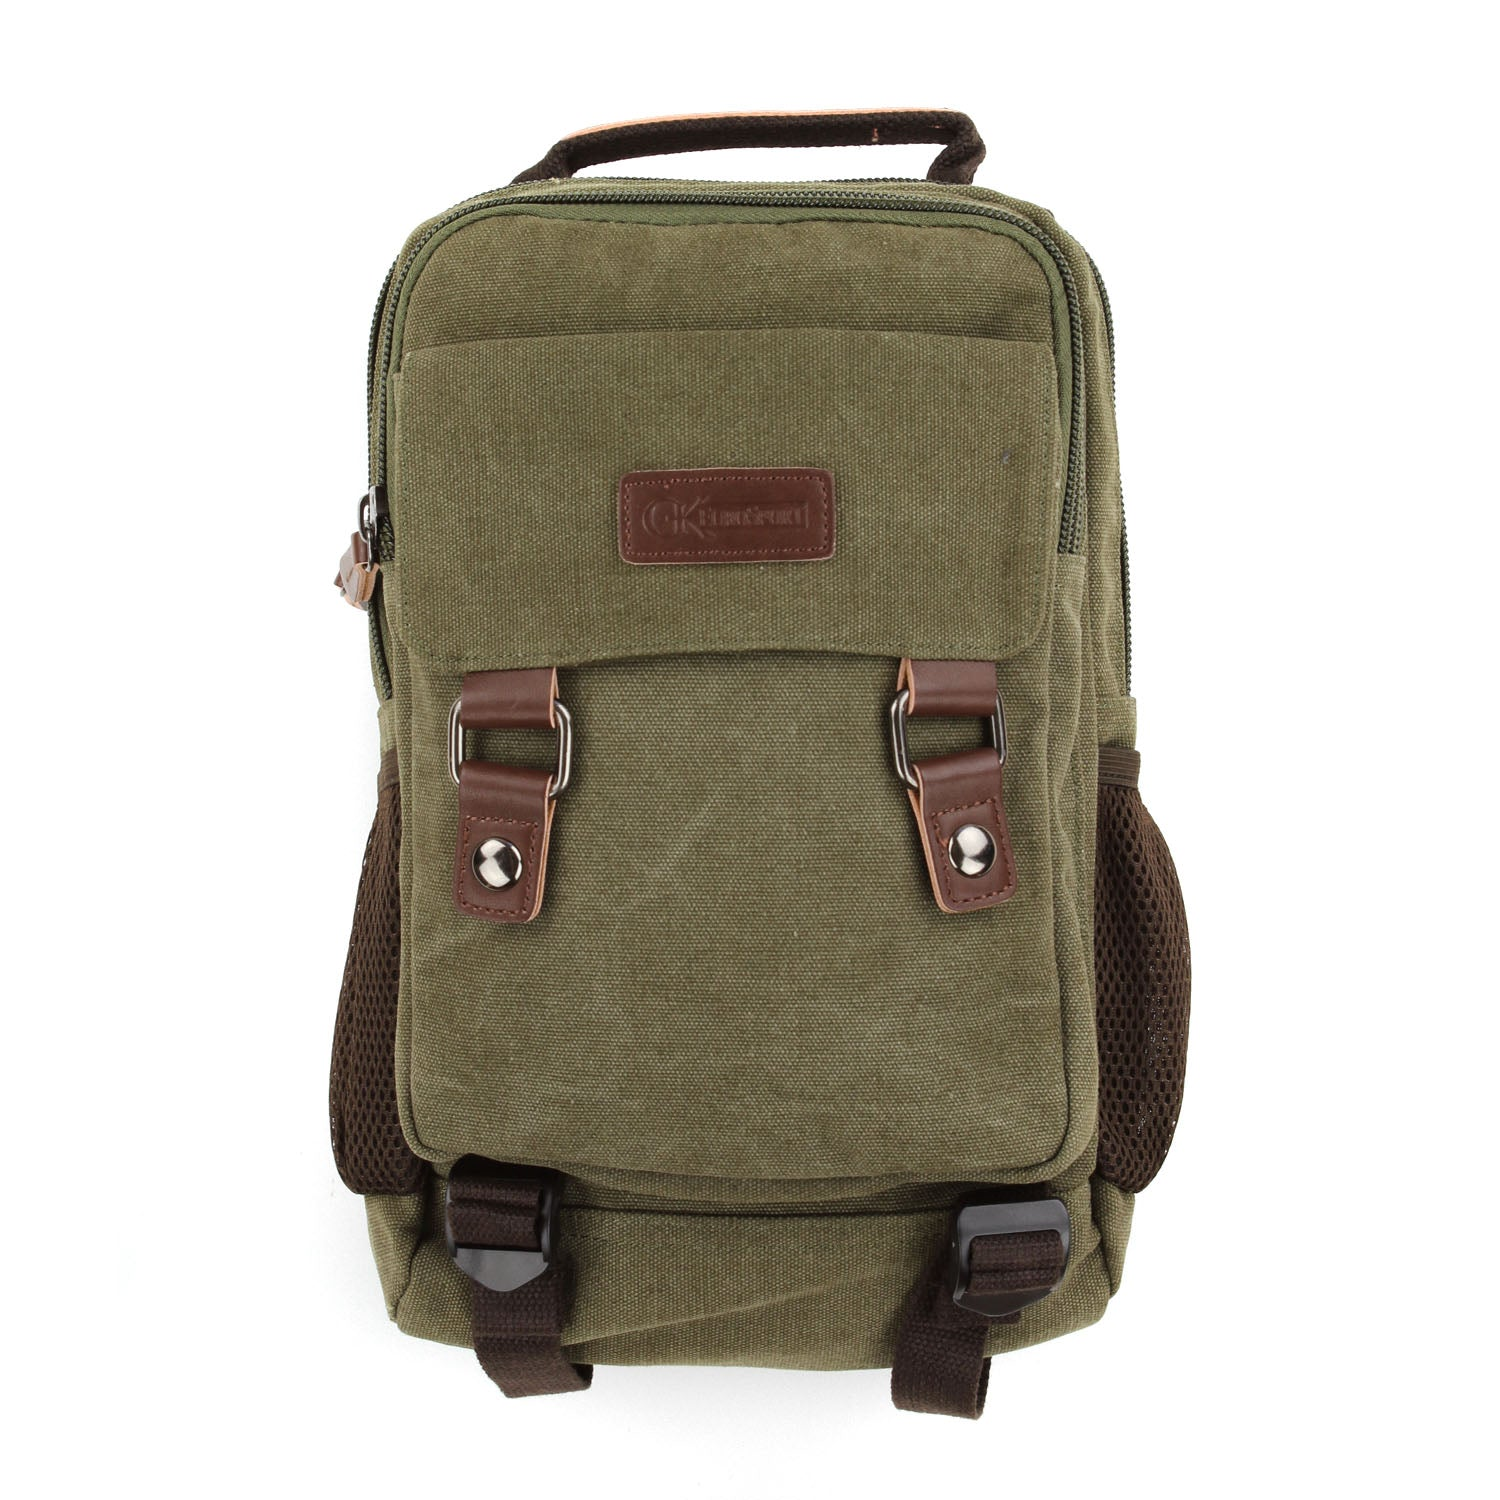 GK EuroSport Canvas Mini Backpack – Shop Munki a3be9f14e5370